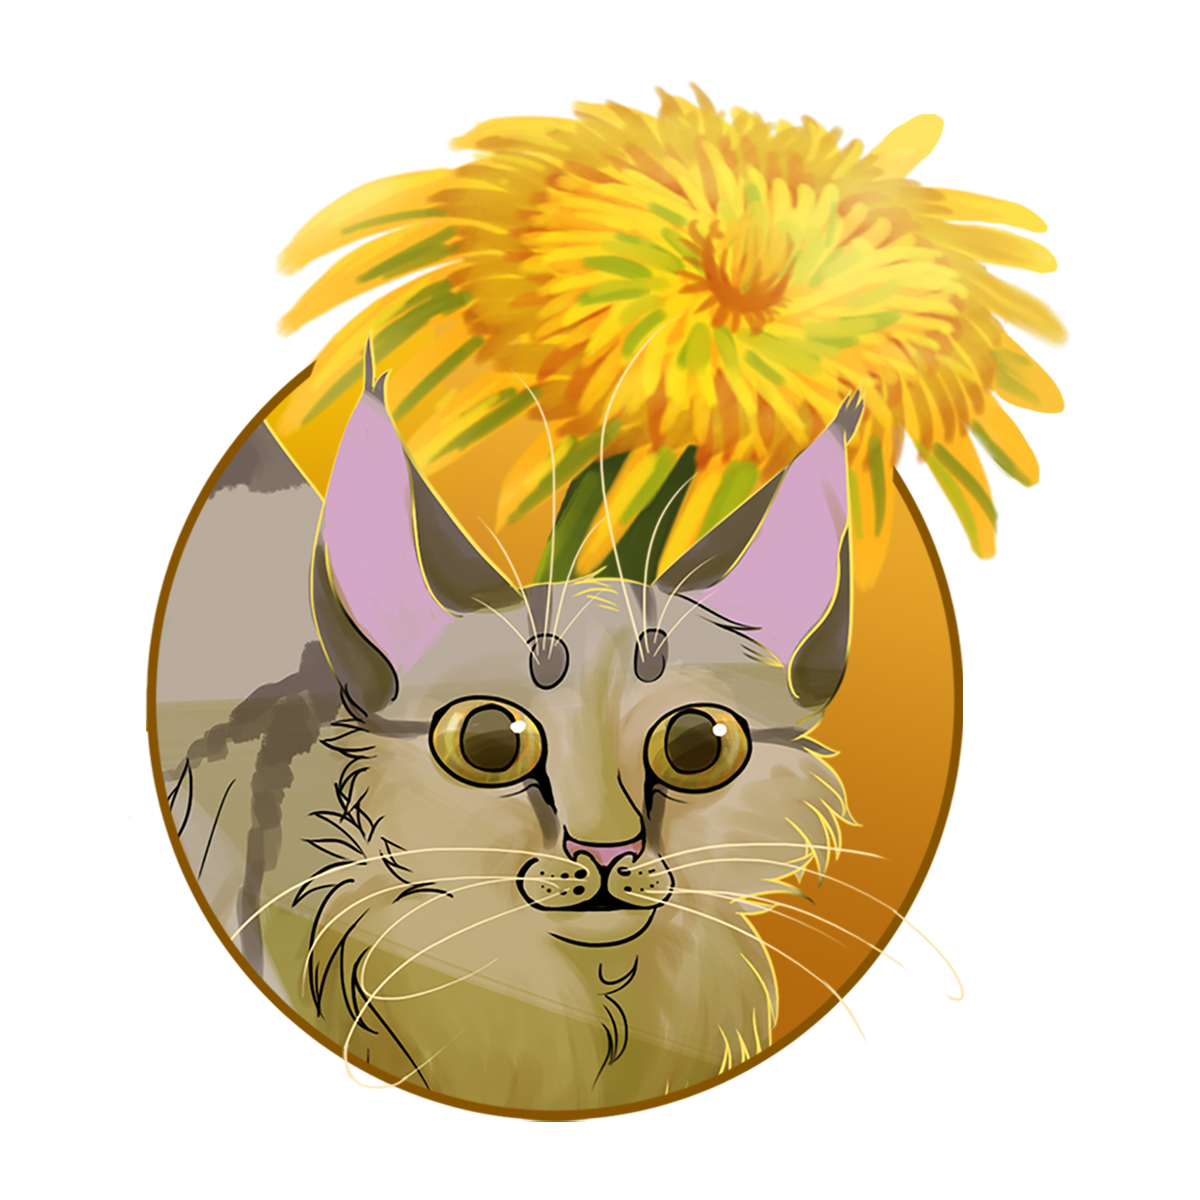 Dandelion is an adventurer. She knows how to climb flowers and trees and is always looking for new places to explore.